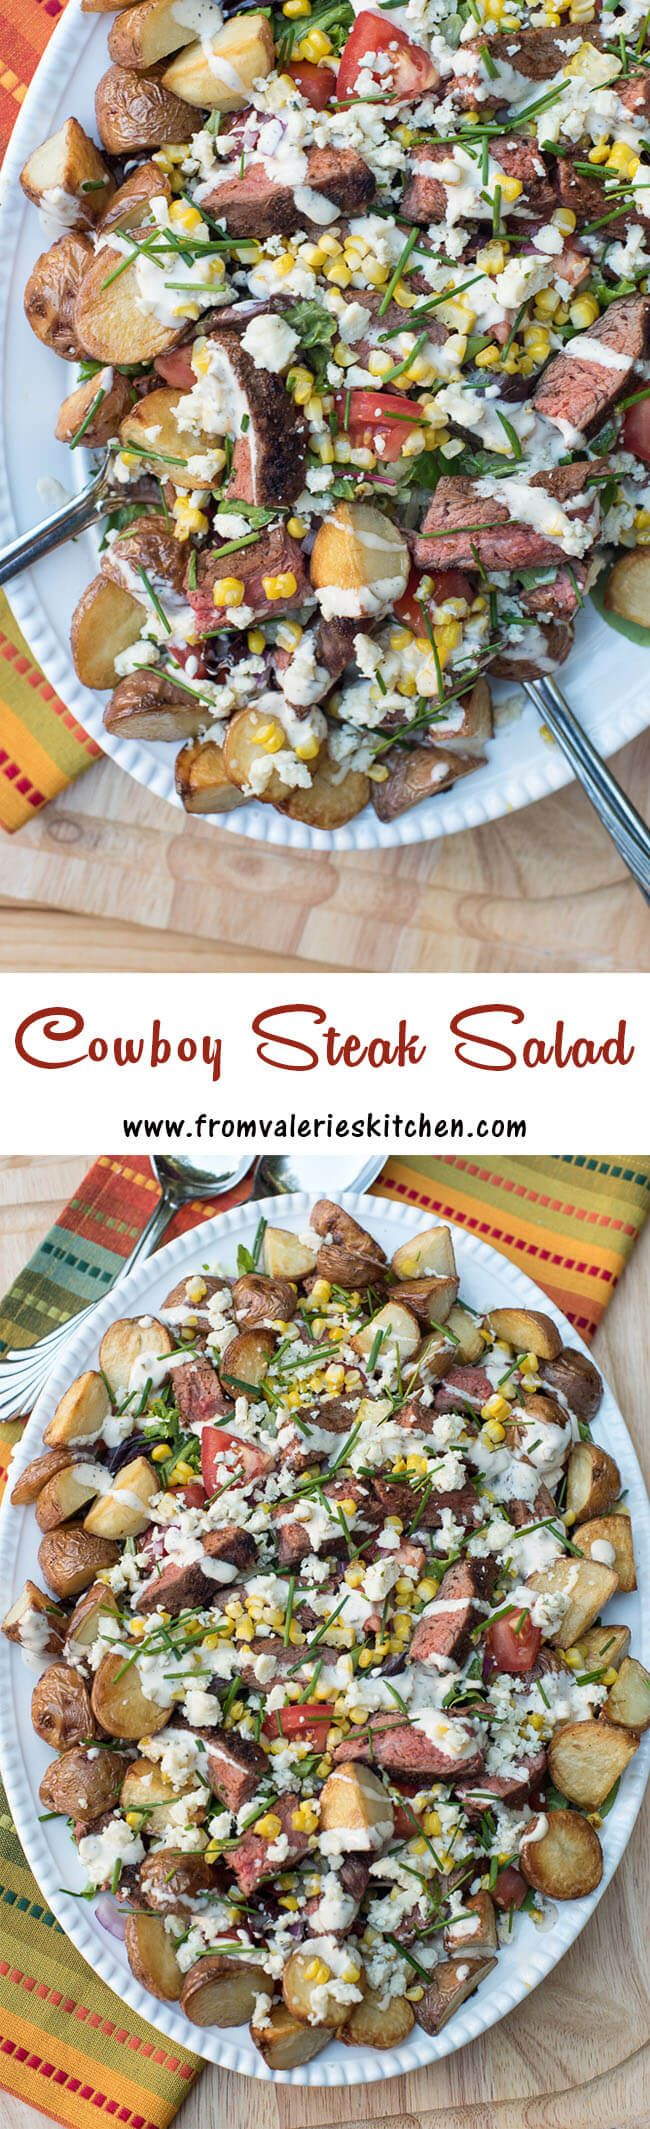 This hearty salad is packed full of steak, roasted pototoes, and grilled corn and will satisfy even your most steadfast carnivores ~ http://www.fromvalerieskitchen.com